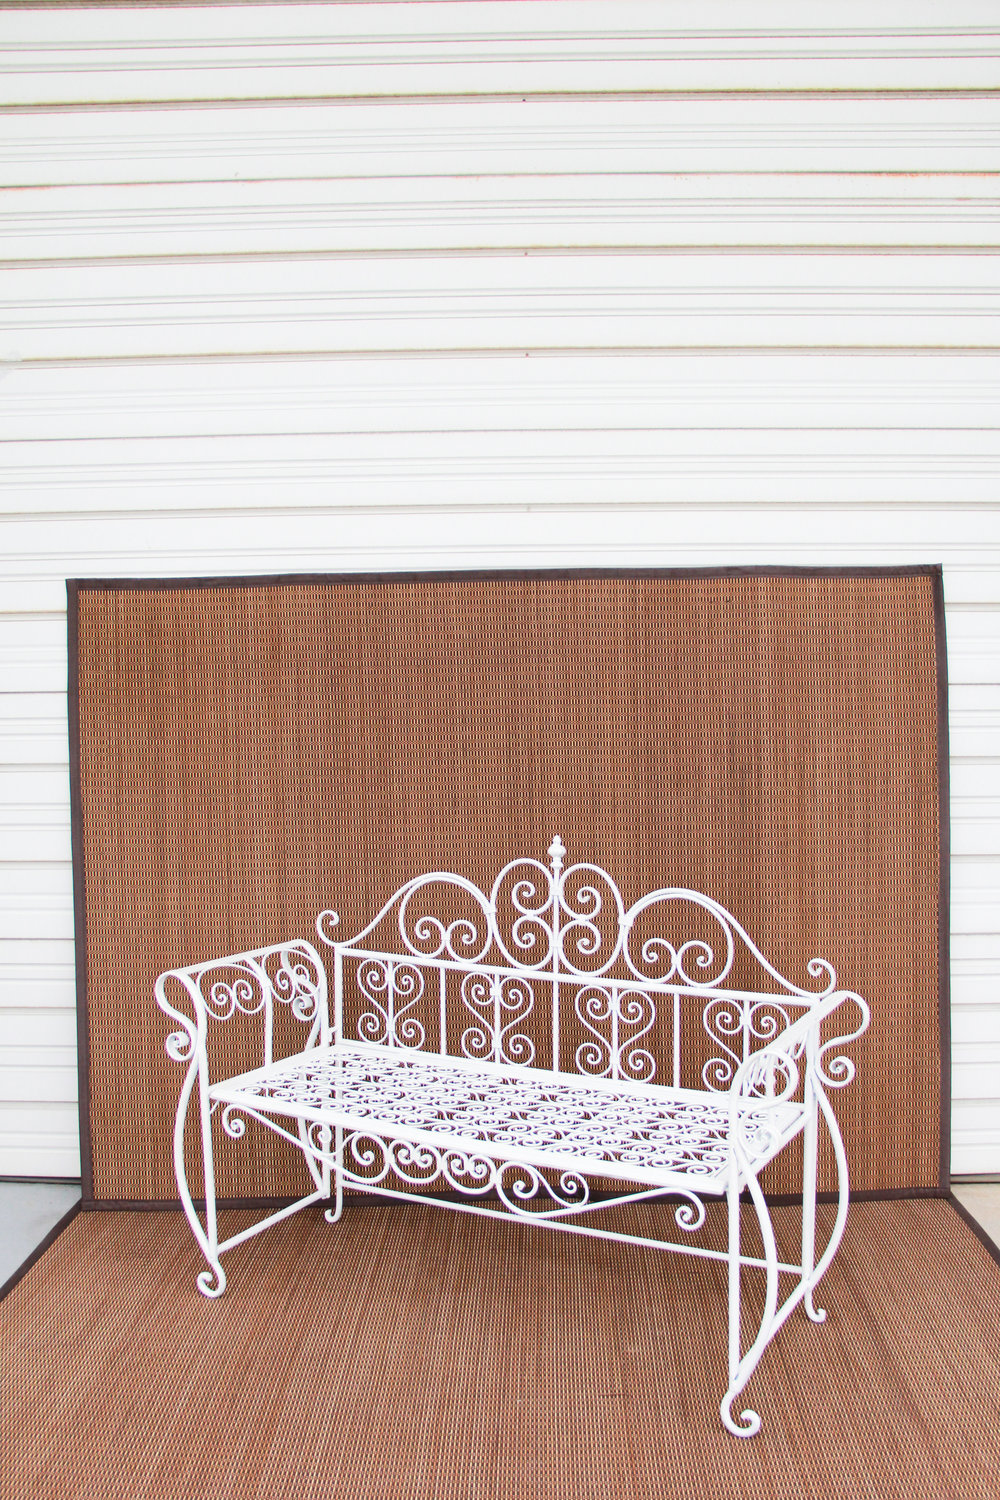 The Garden Loveseat